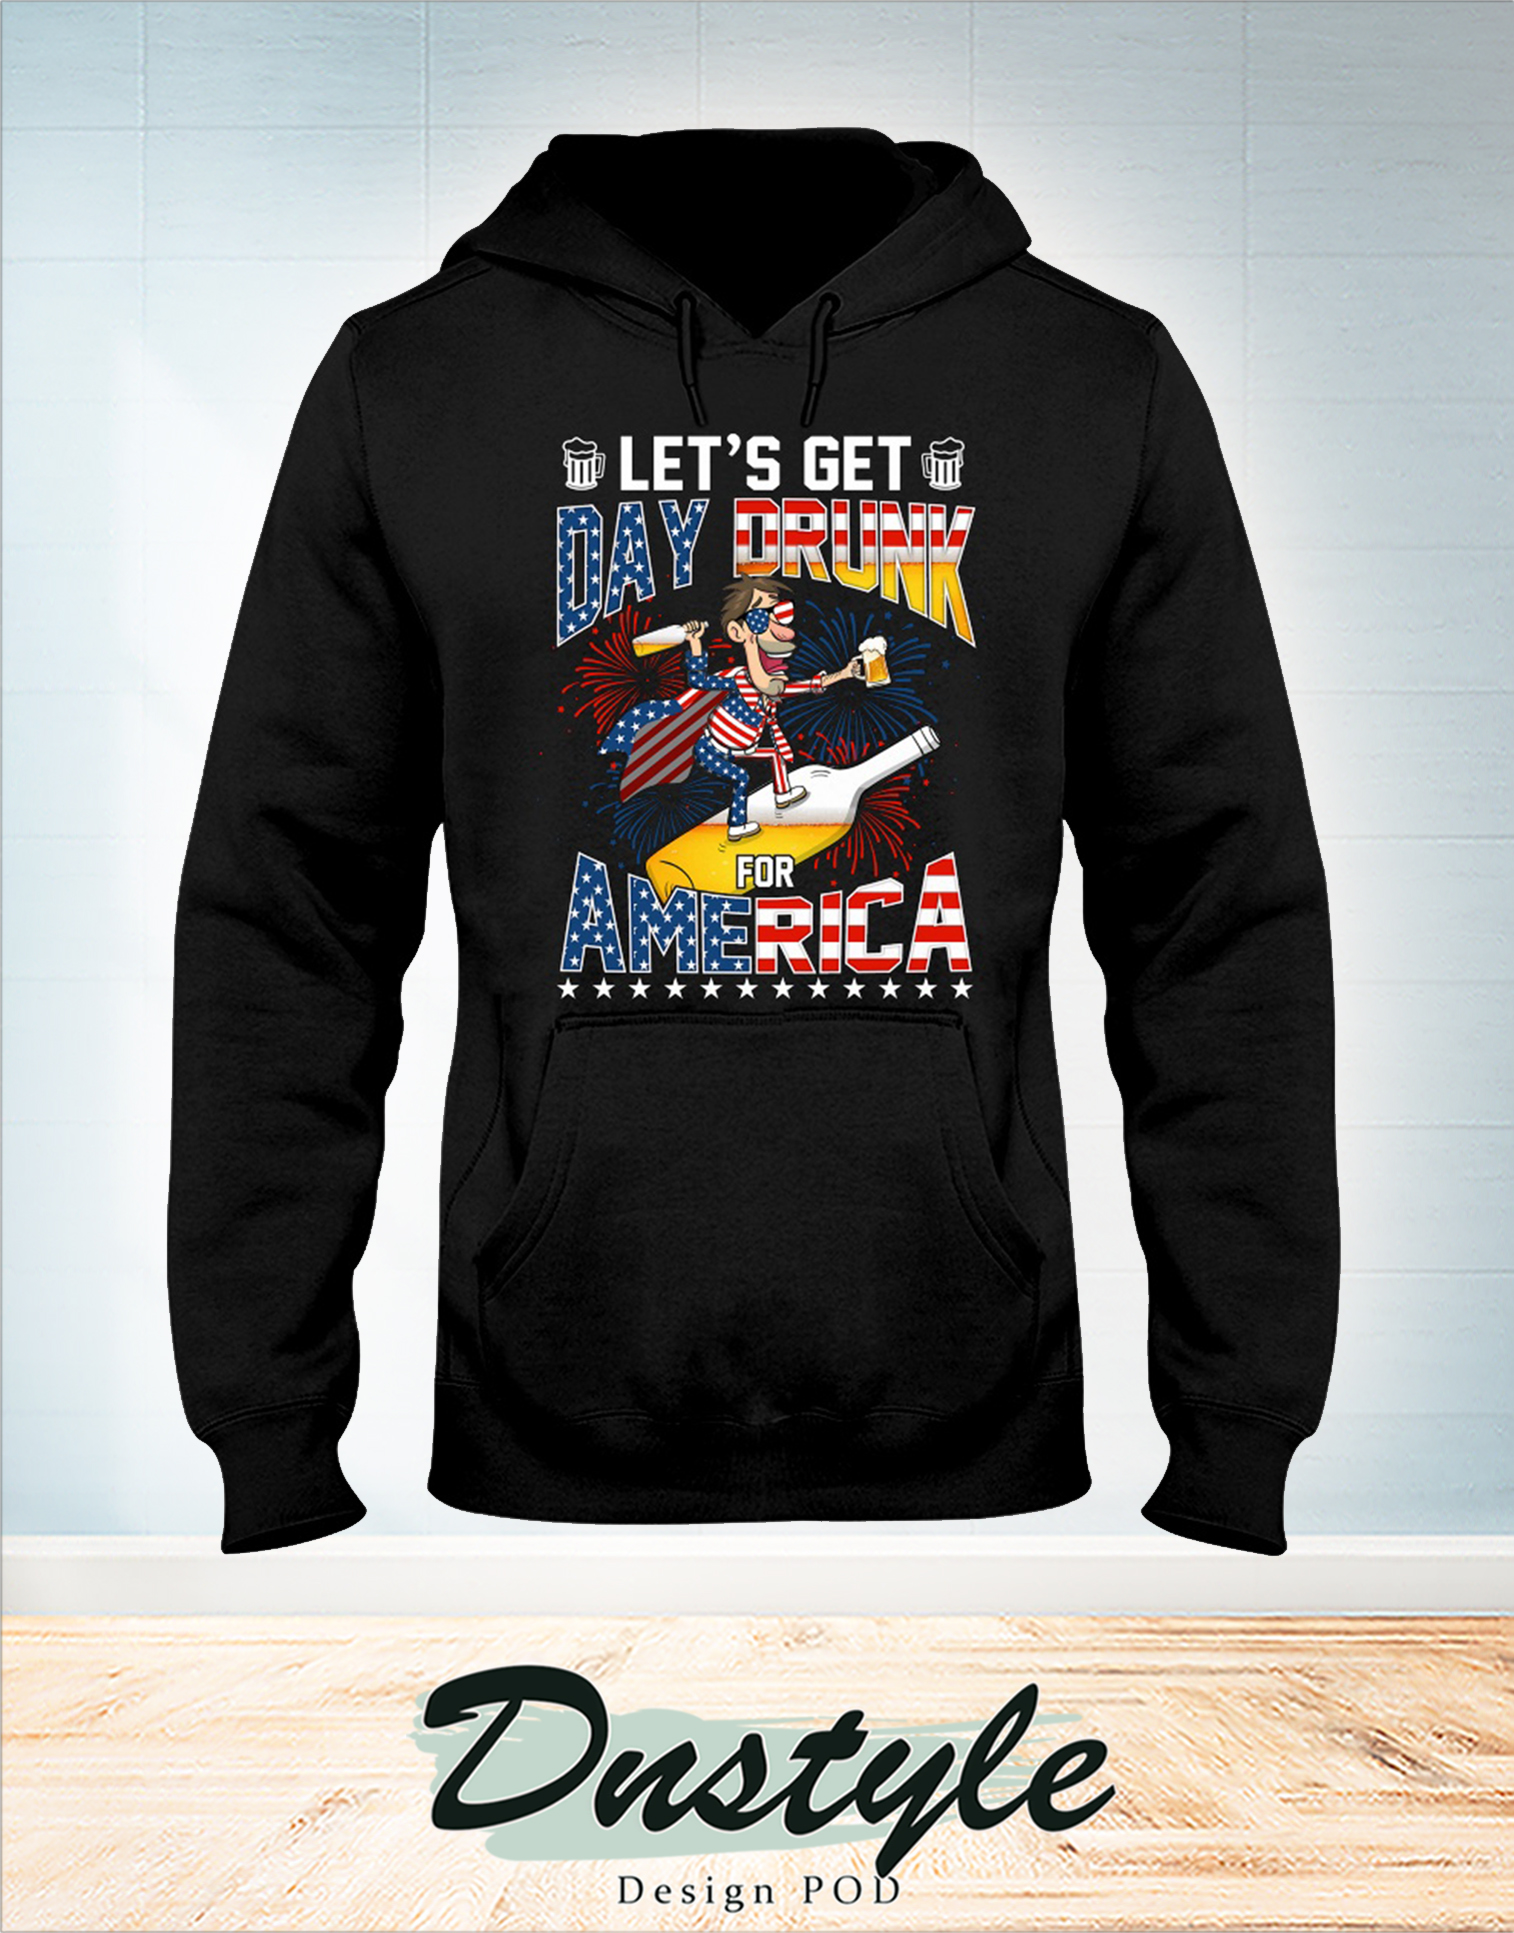 Let's get day drunk for america 4th of july hoodie